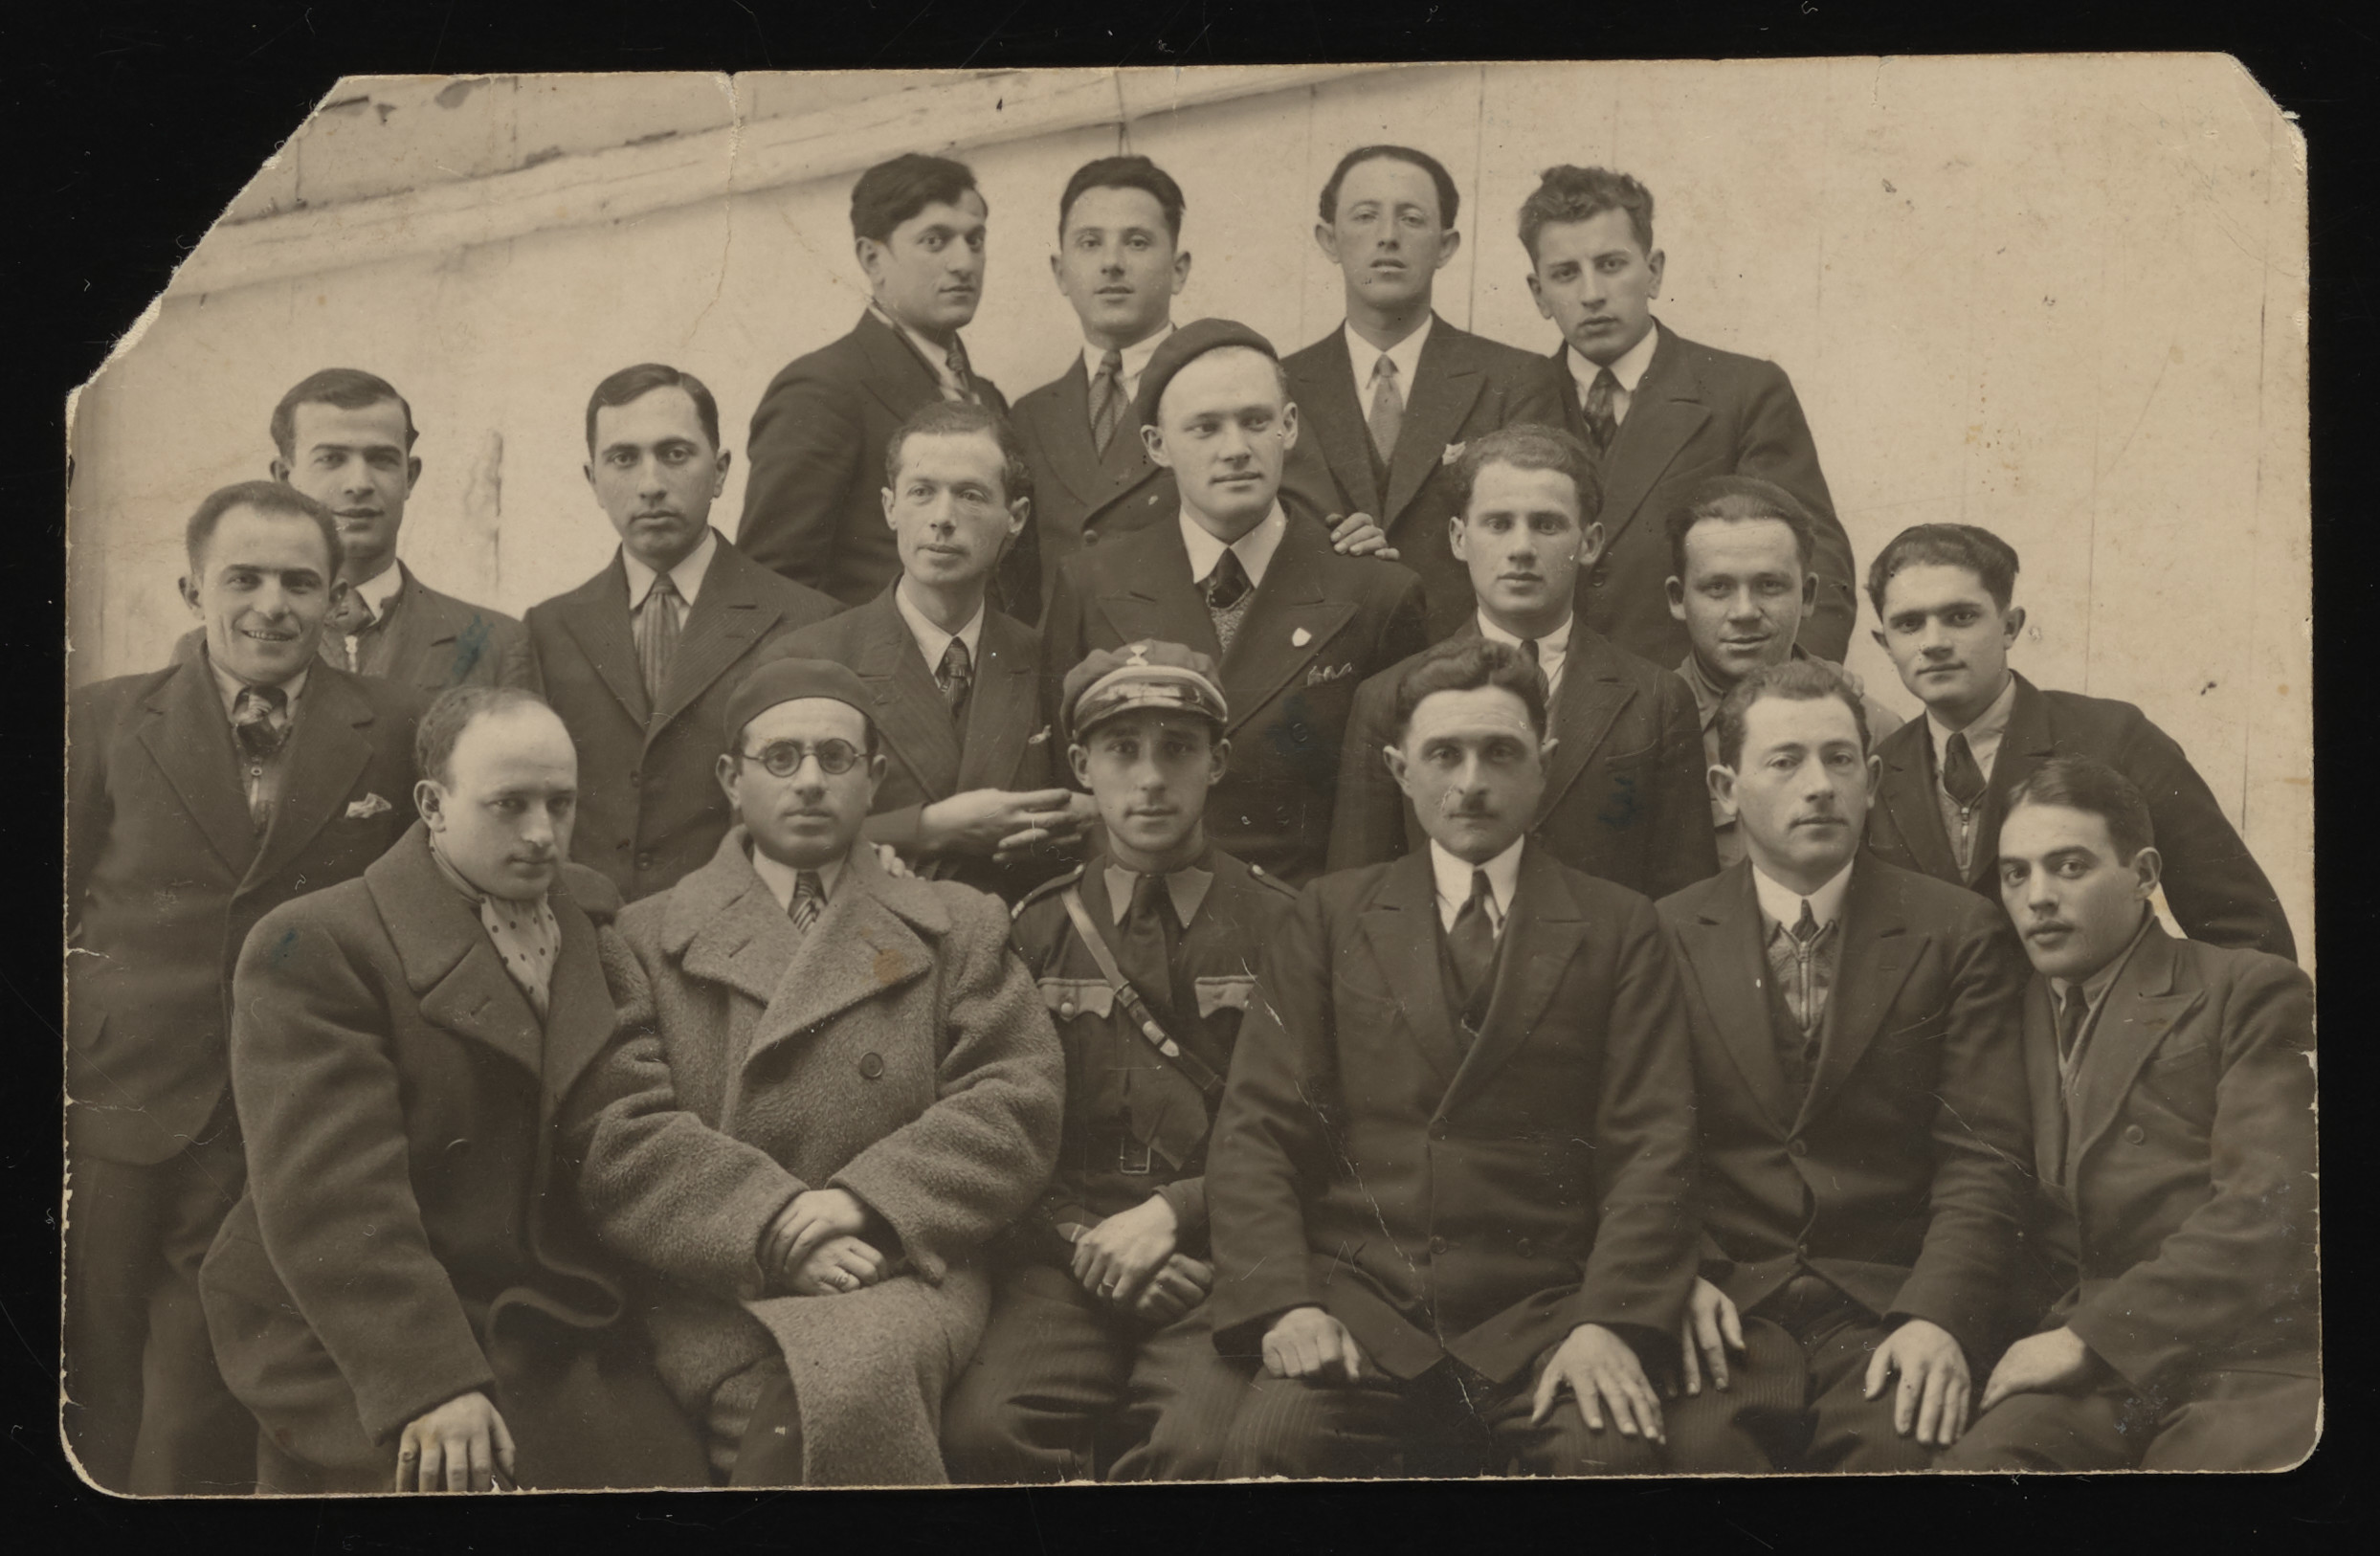 Group portrait of the members of the Zionist group, Brit Trumpeldor, in Kolbuszowa.    Among those pictured are Pasiek Rappaport (front row, left) who later became the second chairman of the Jewish council in Kolbuszowa; and his brother Yossel Rappaport (middle row, center wearing a beret) who later became the head of the Jewish police in the ghetto.